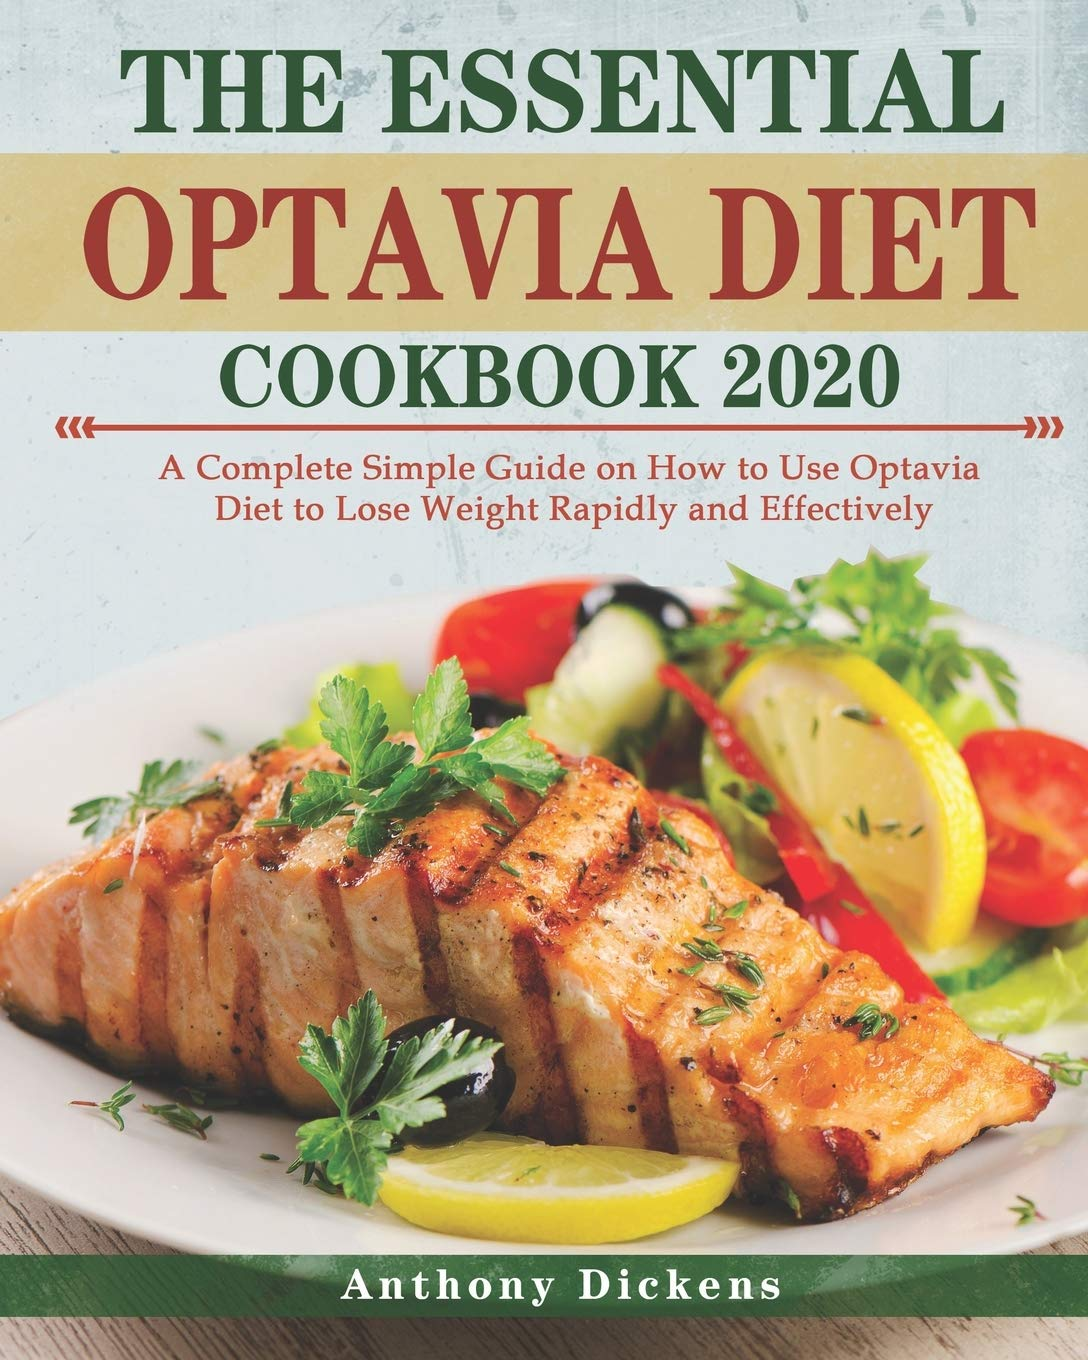 octivia diet good for those with diabetes